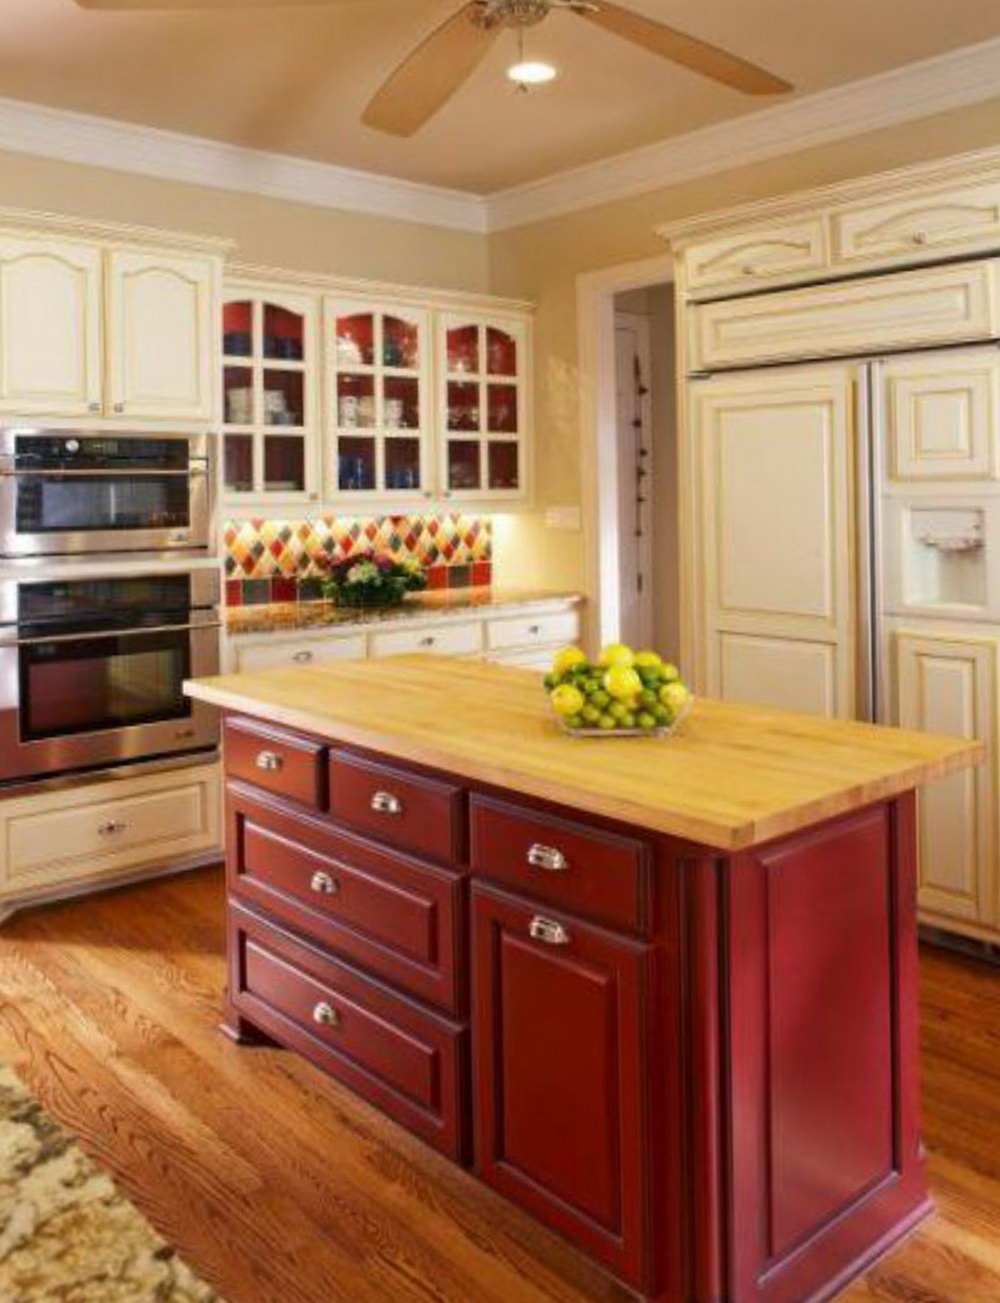 Kitchen Island Cabinet Layout